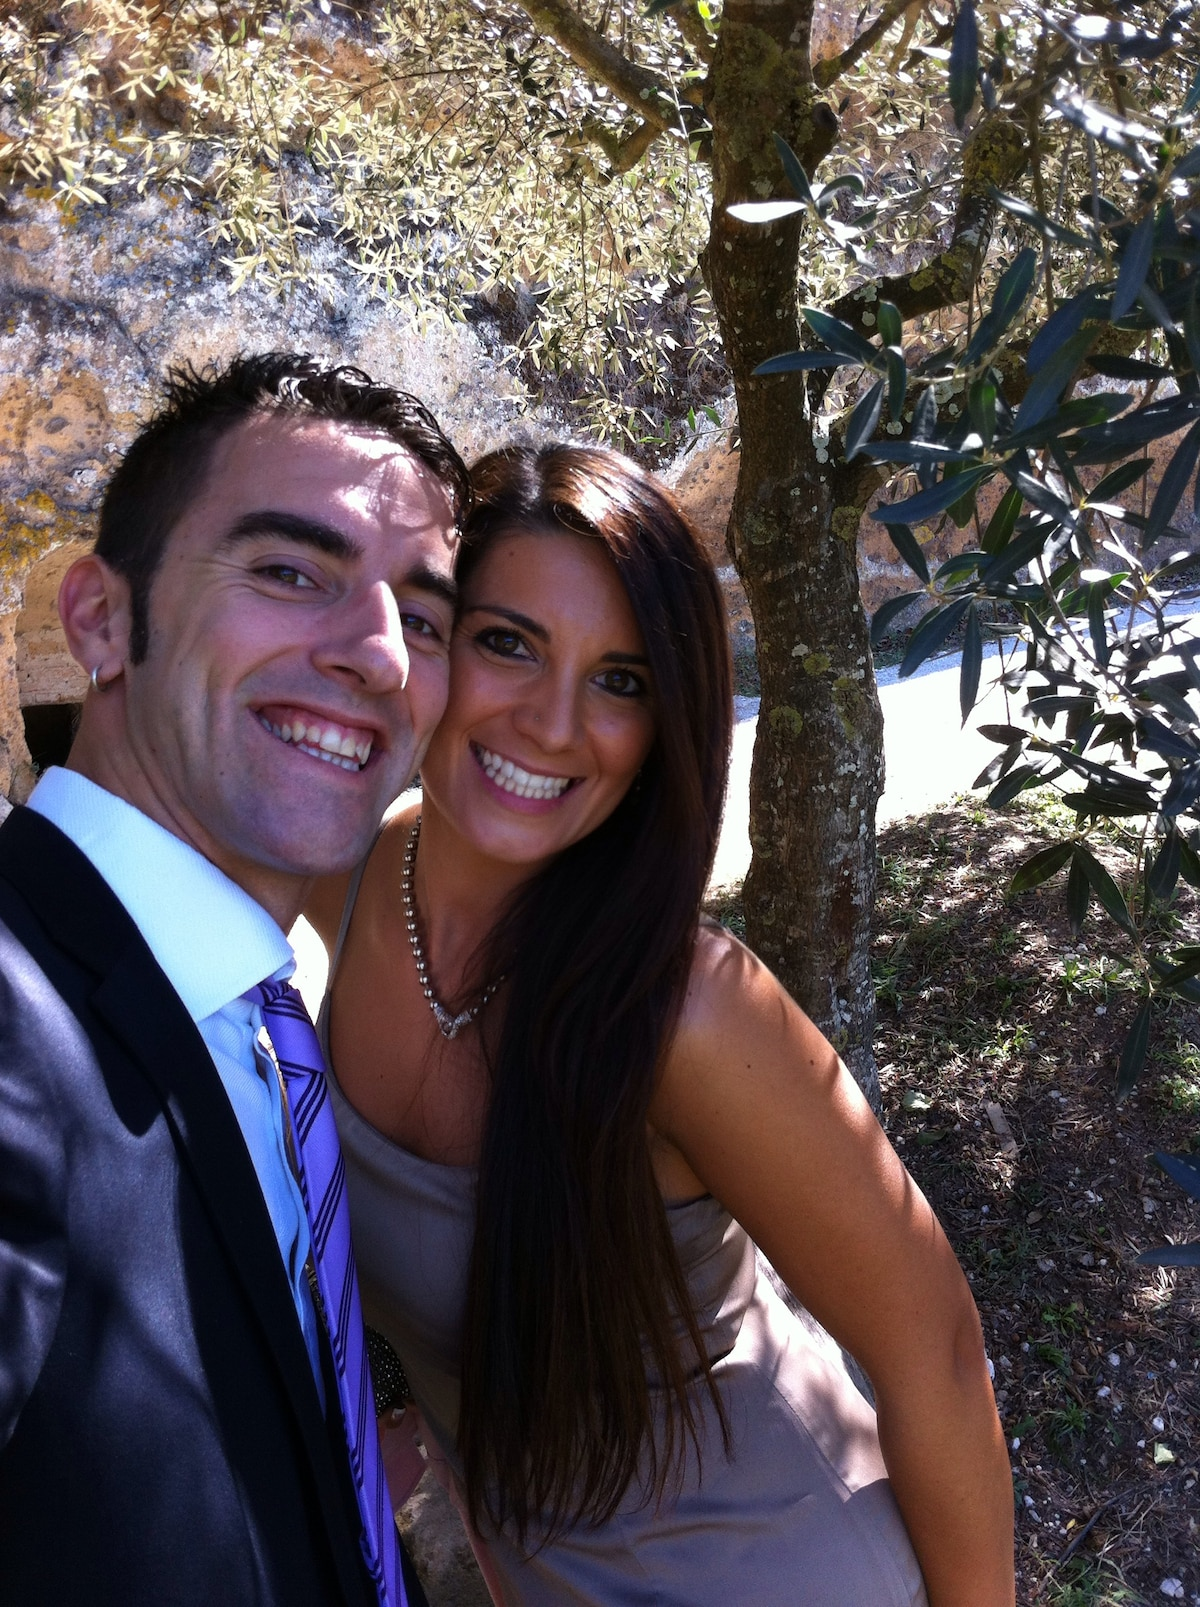 We, Stefano and Sabrina (32 and 28 years old) , ar